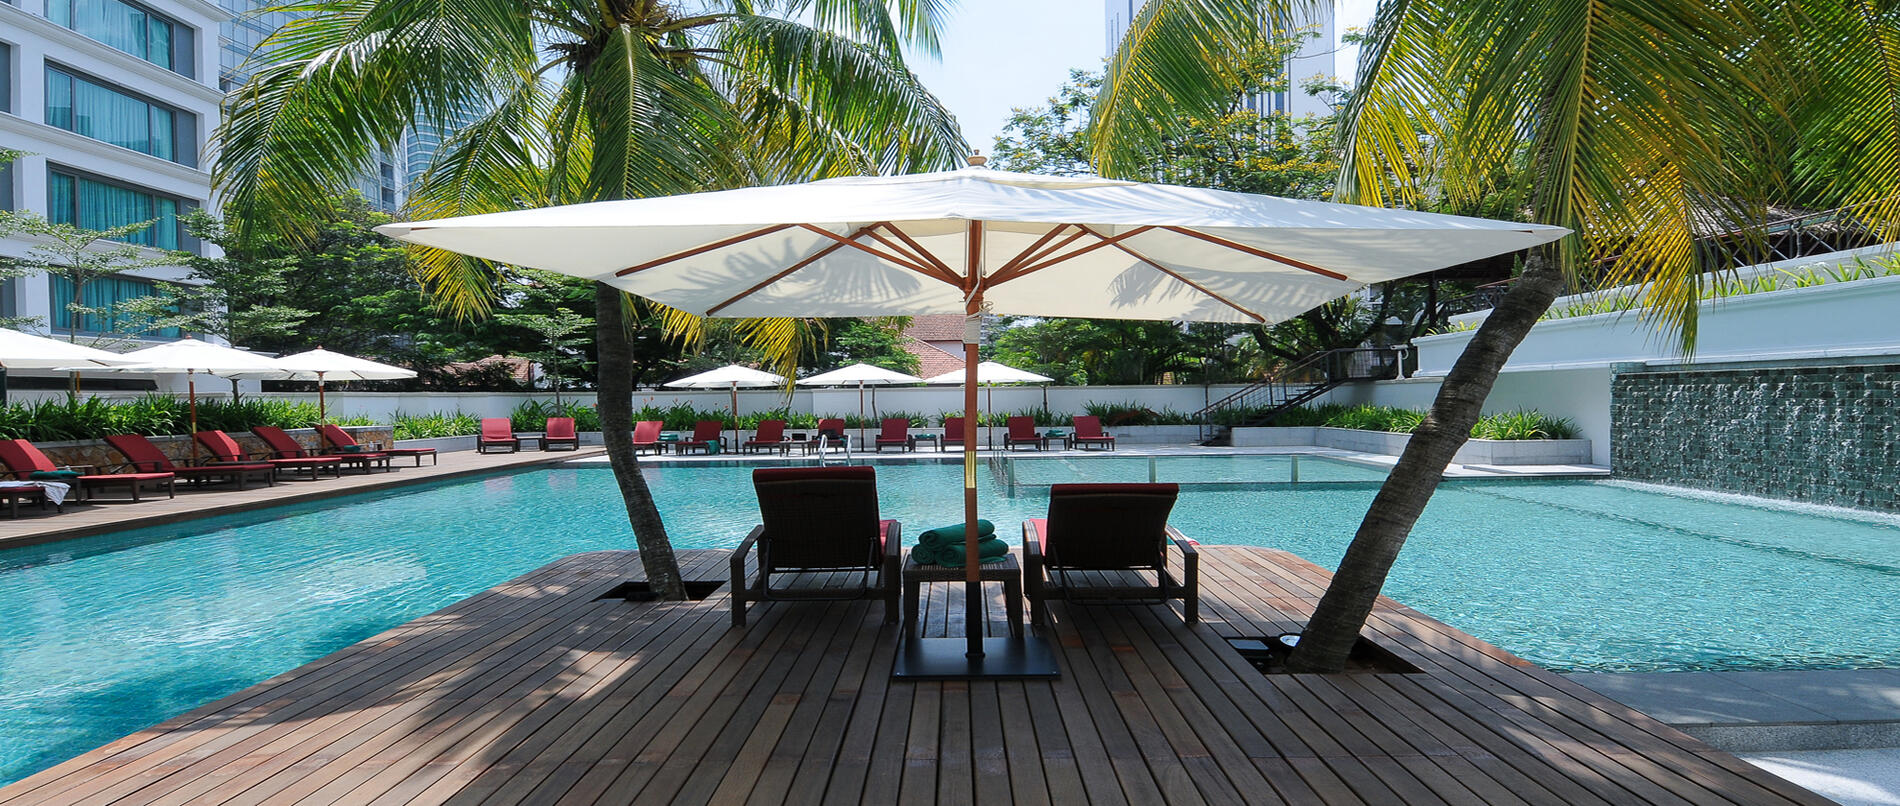 Gymnasium And Outdoor Swimming Pool | KLCC Hotels With A Pool